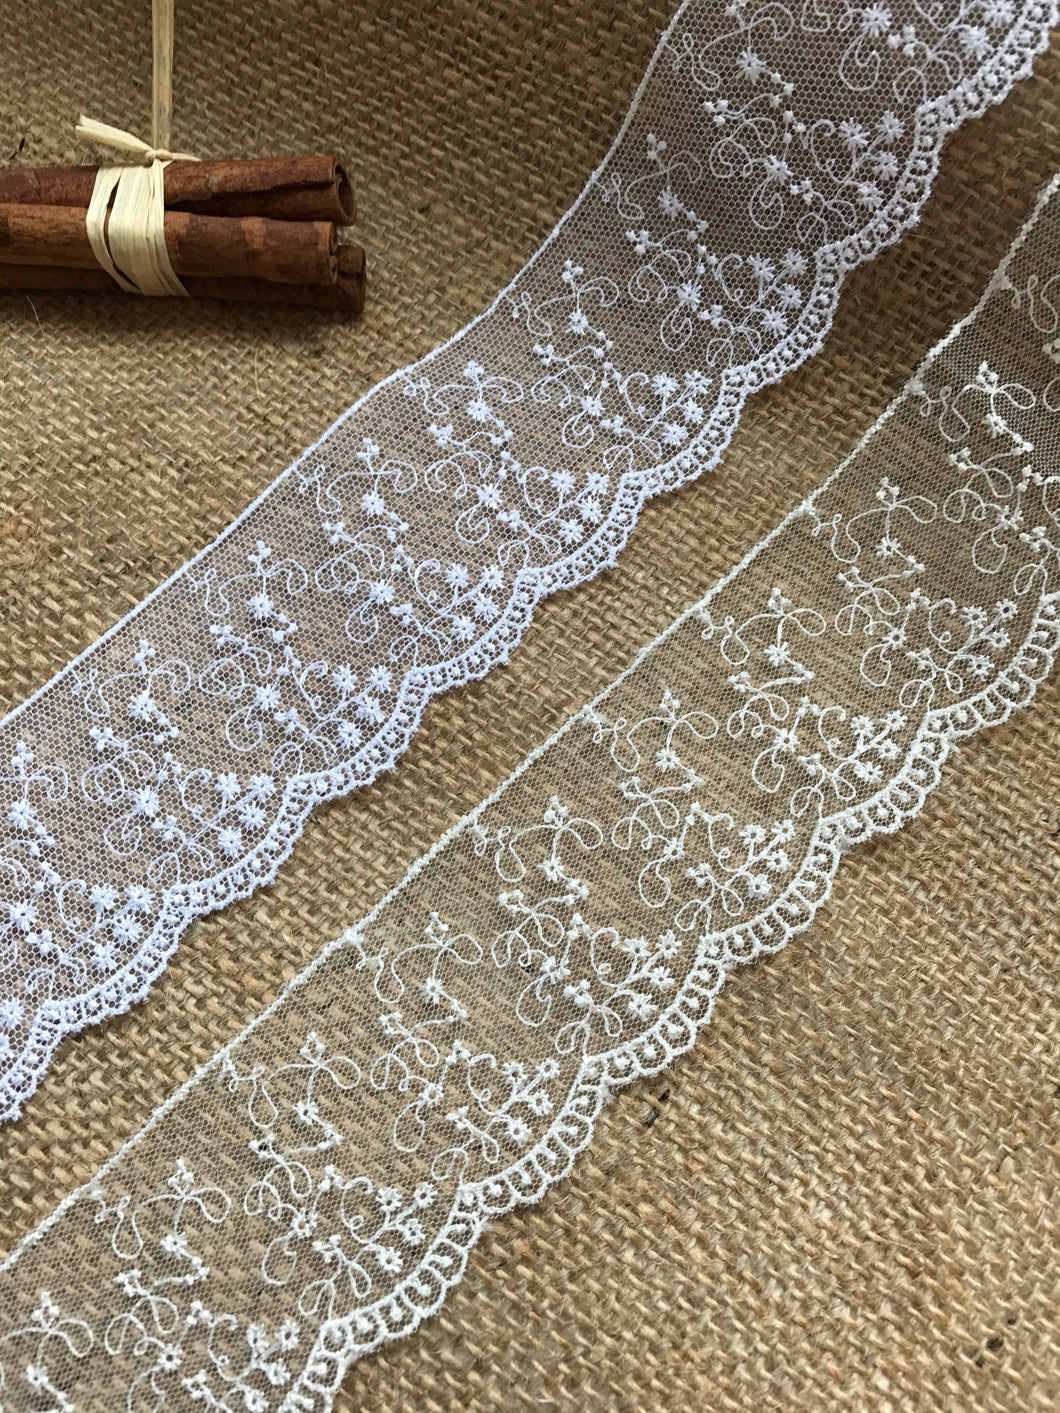 Delicate Embroidered Tulle Bridal Lace Trim 5 cm/2